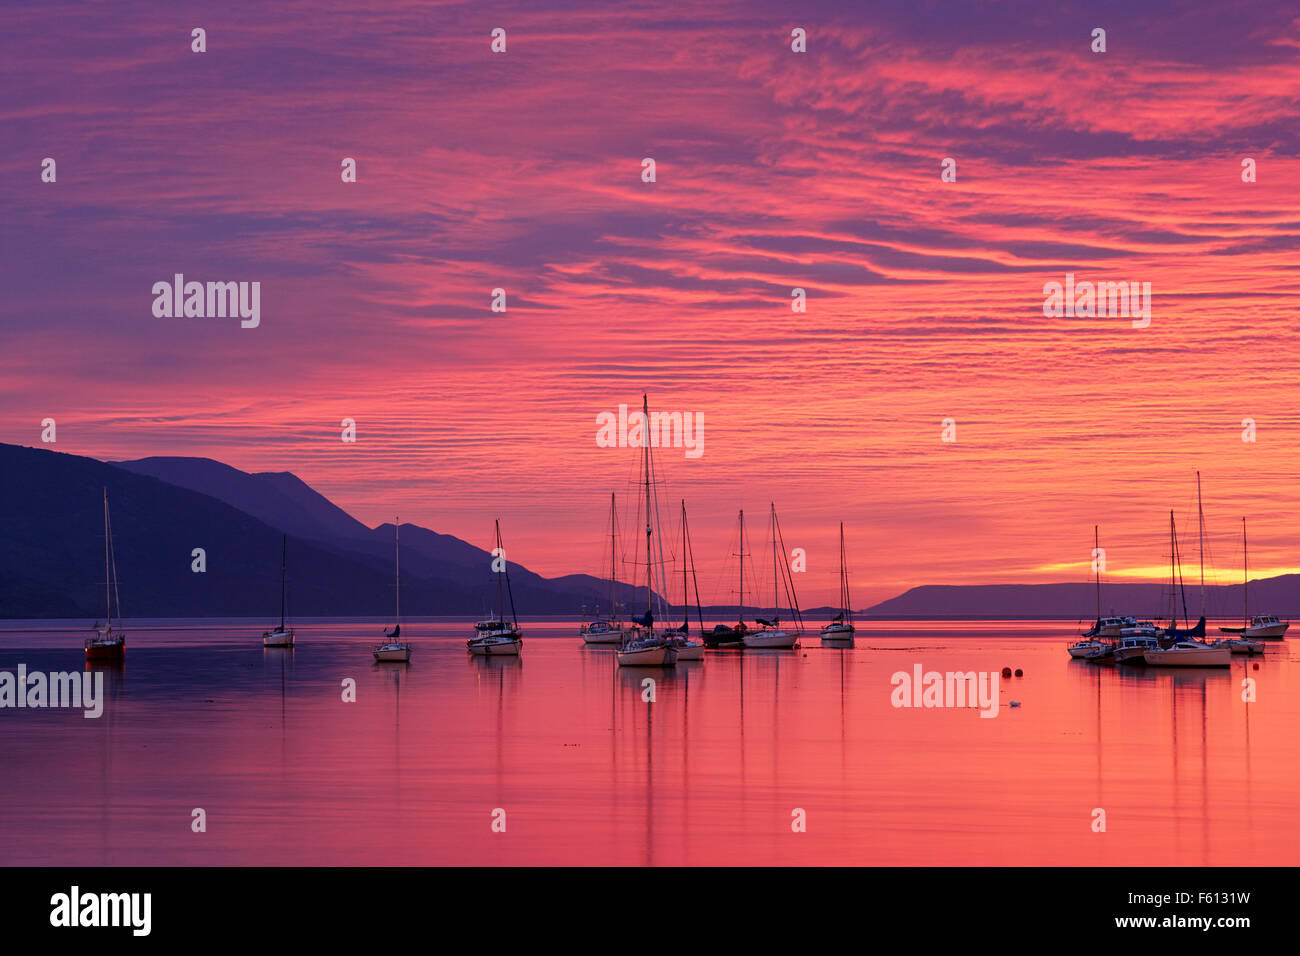 Sailing boats in harbour at sunset, Ushuaia, Tierra del Fuego, Argentina - Stock Image